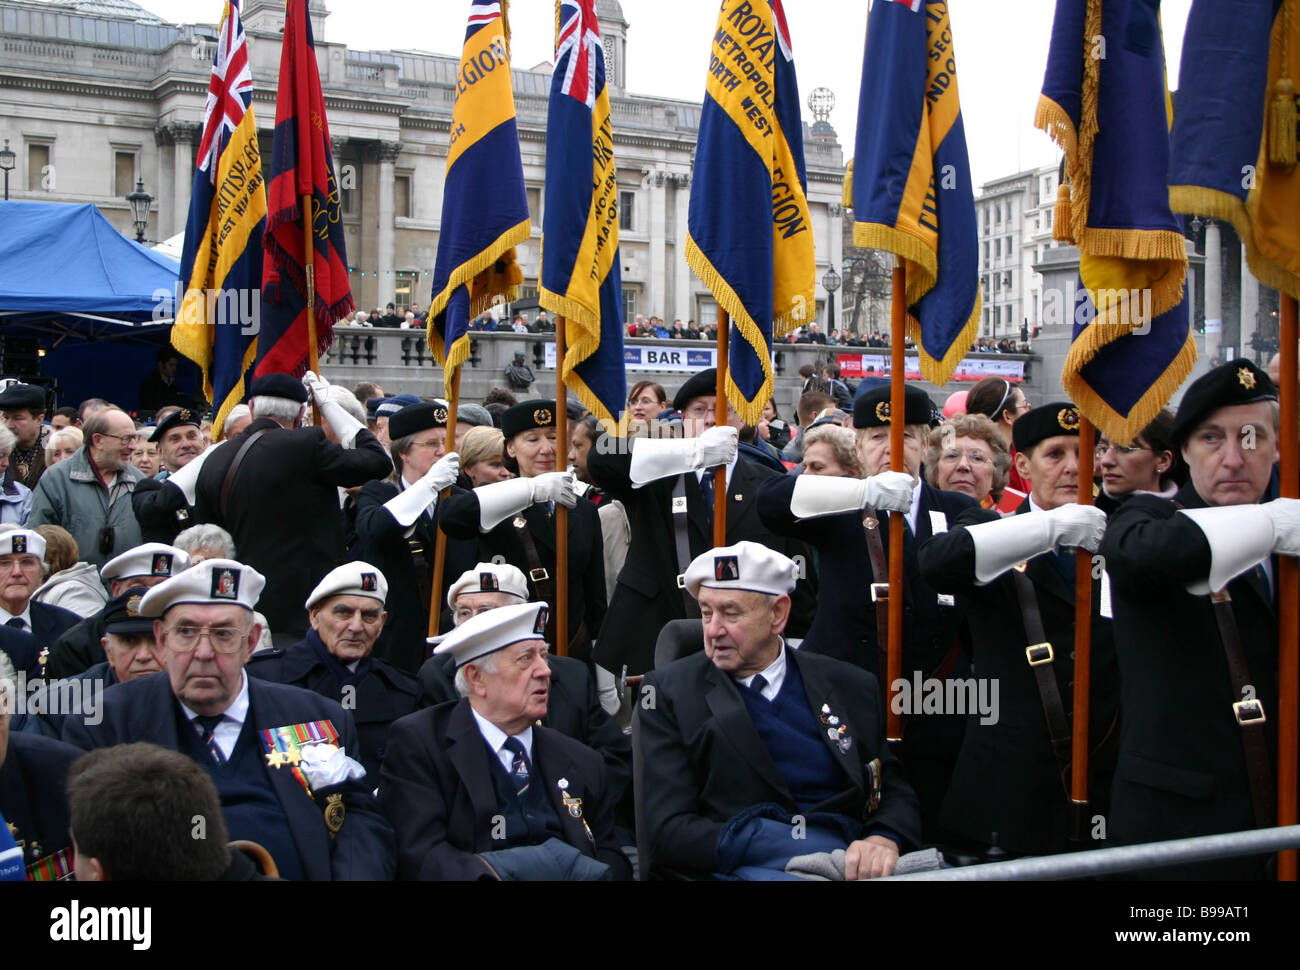 British veterans honorable guests of the Russian winter festival in London - Stock Image